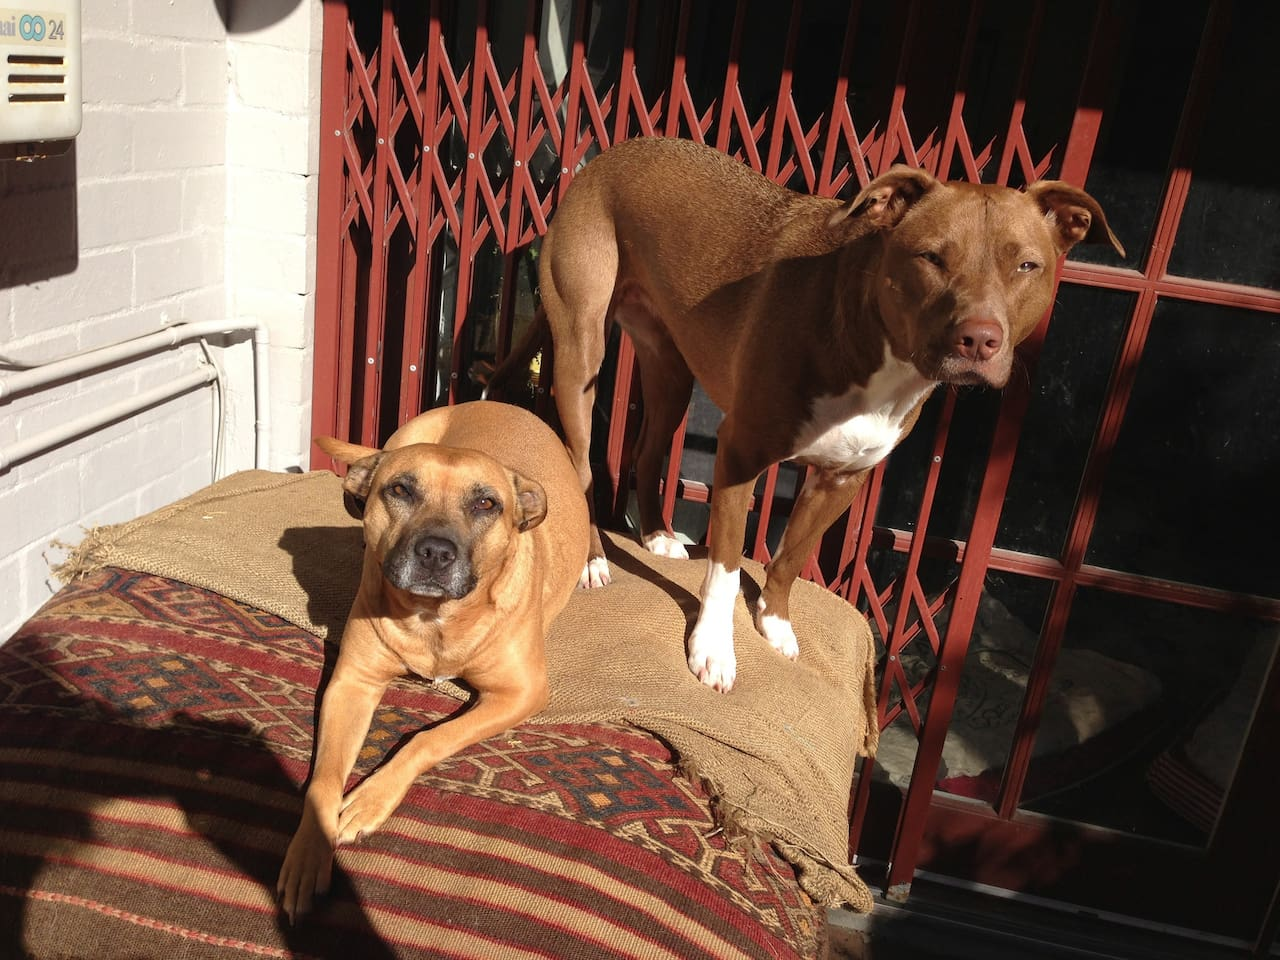 Canine residents outside in courtyard enjoying the sun